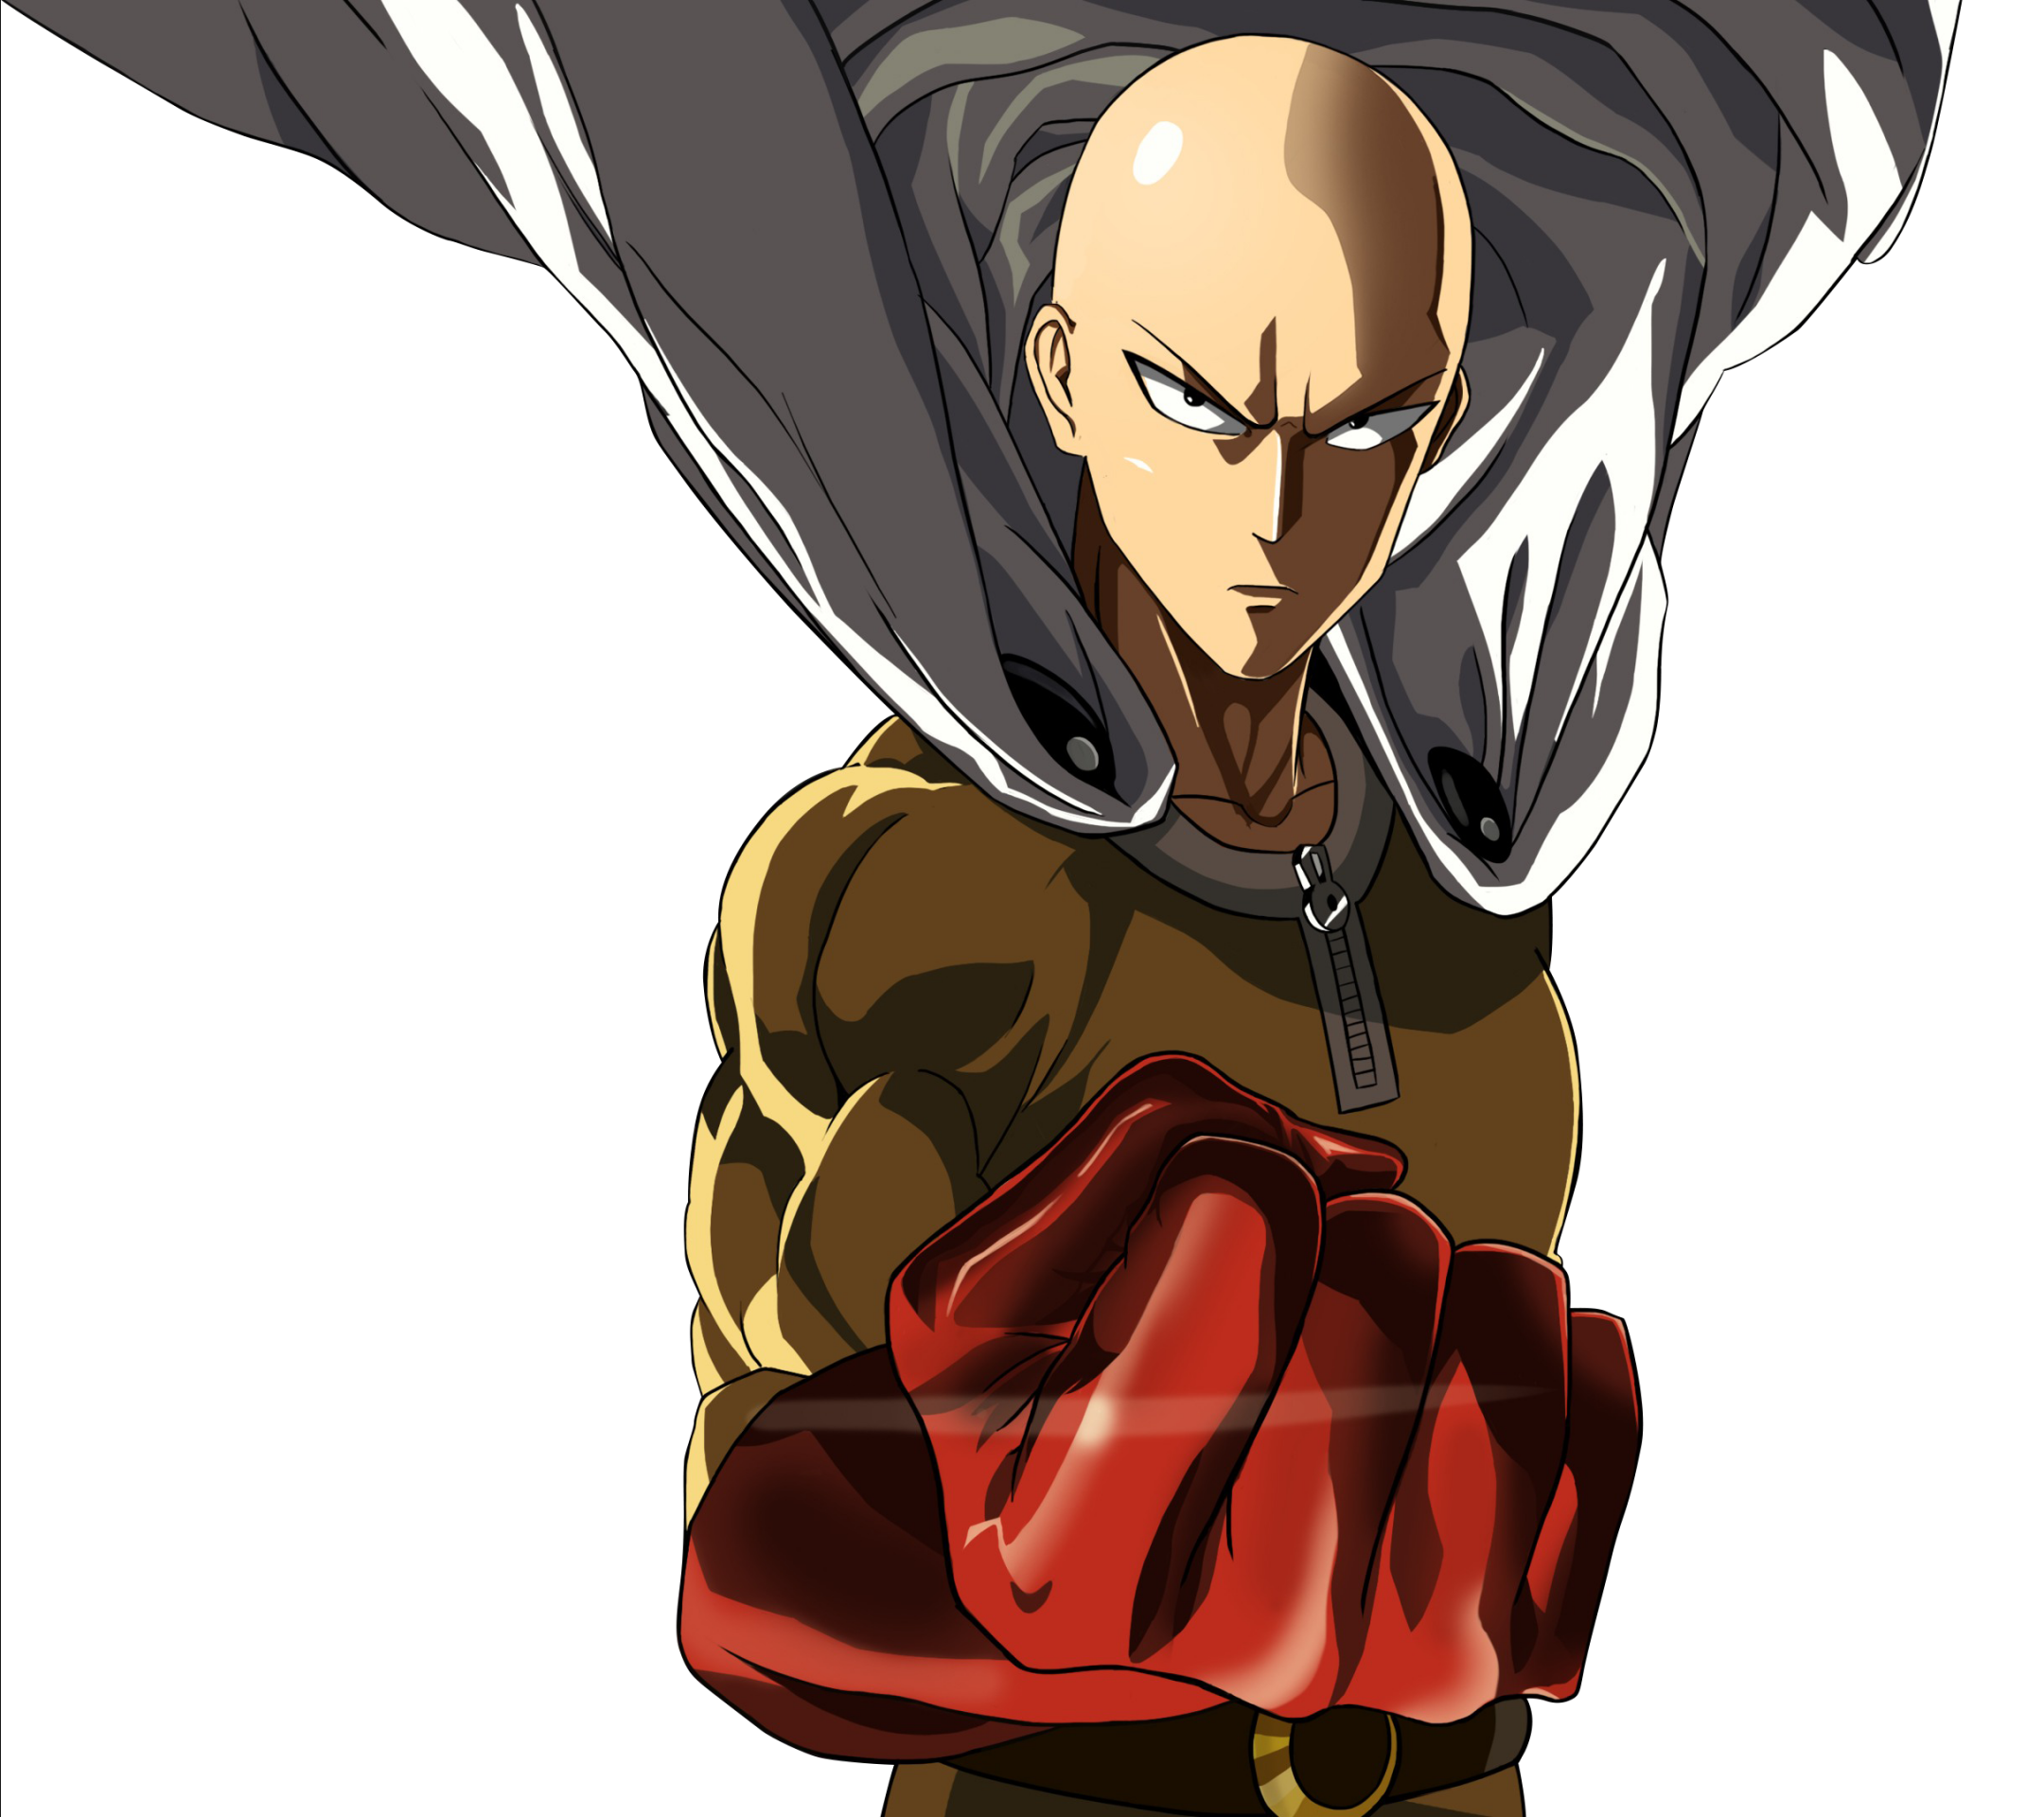 Anime One Punch Man Png - Anime/One-Punch Man (2160x1920) Wallpaper ID: 595134 - Mobile Abyss